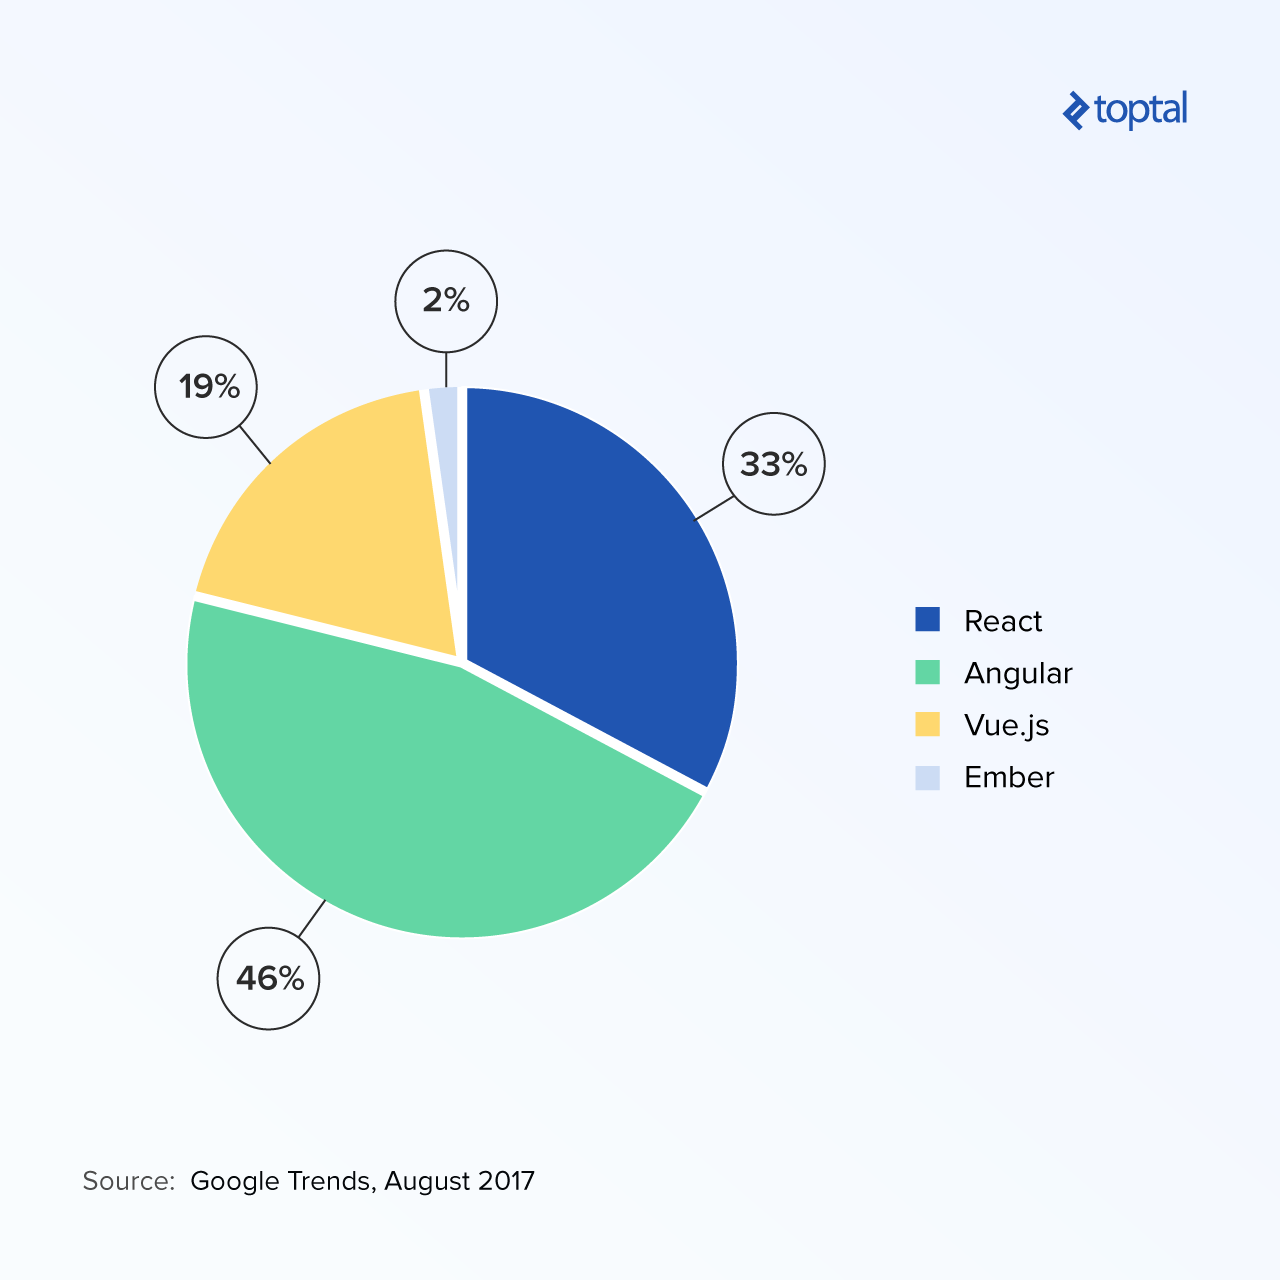 Pie chart comparing the popularity of React, Angular, Vue.js, and Ember, based on Google Trends data.